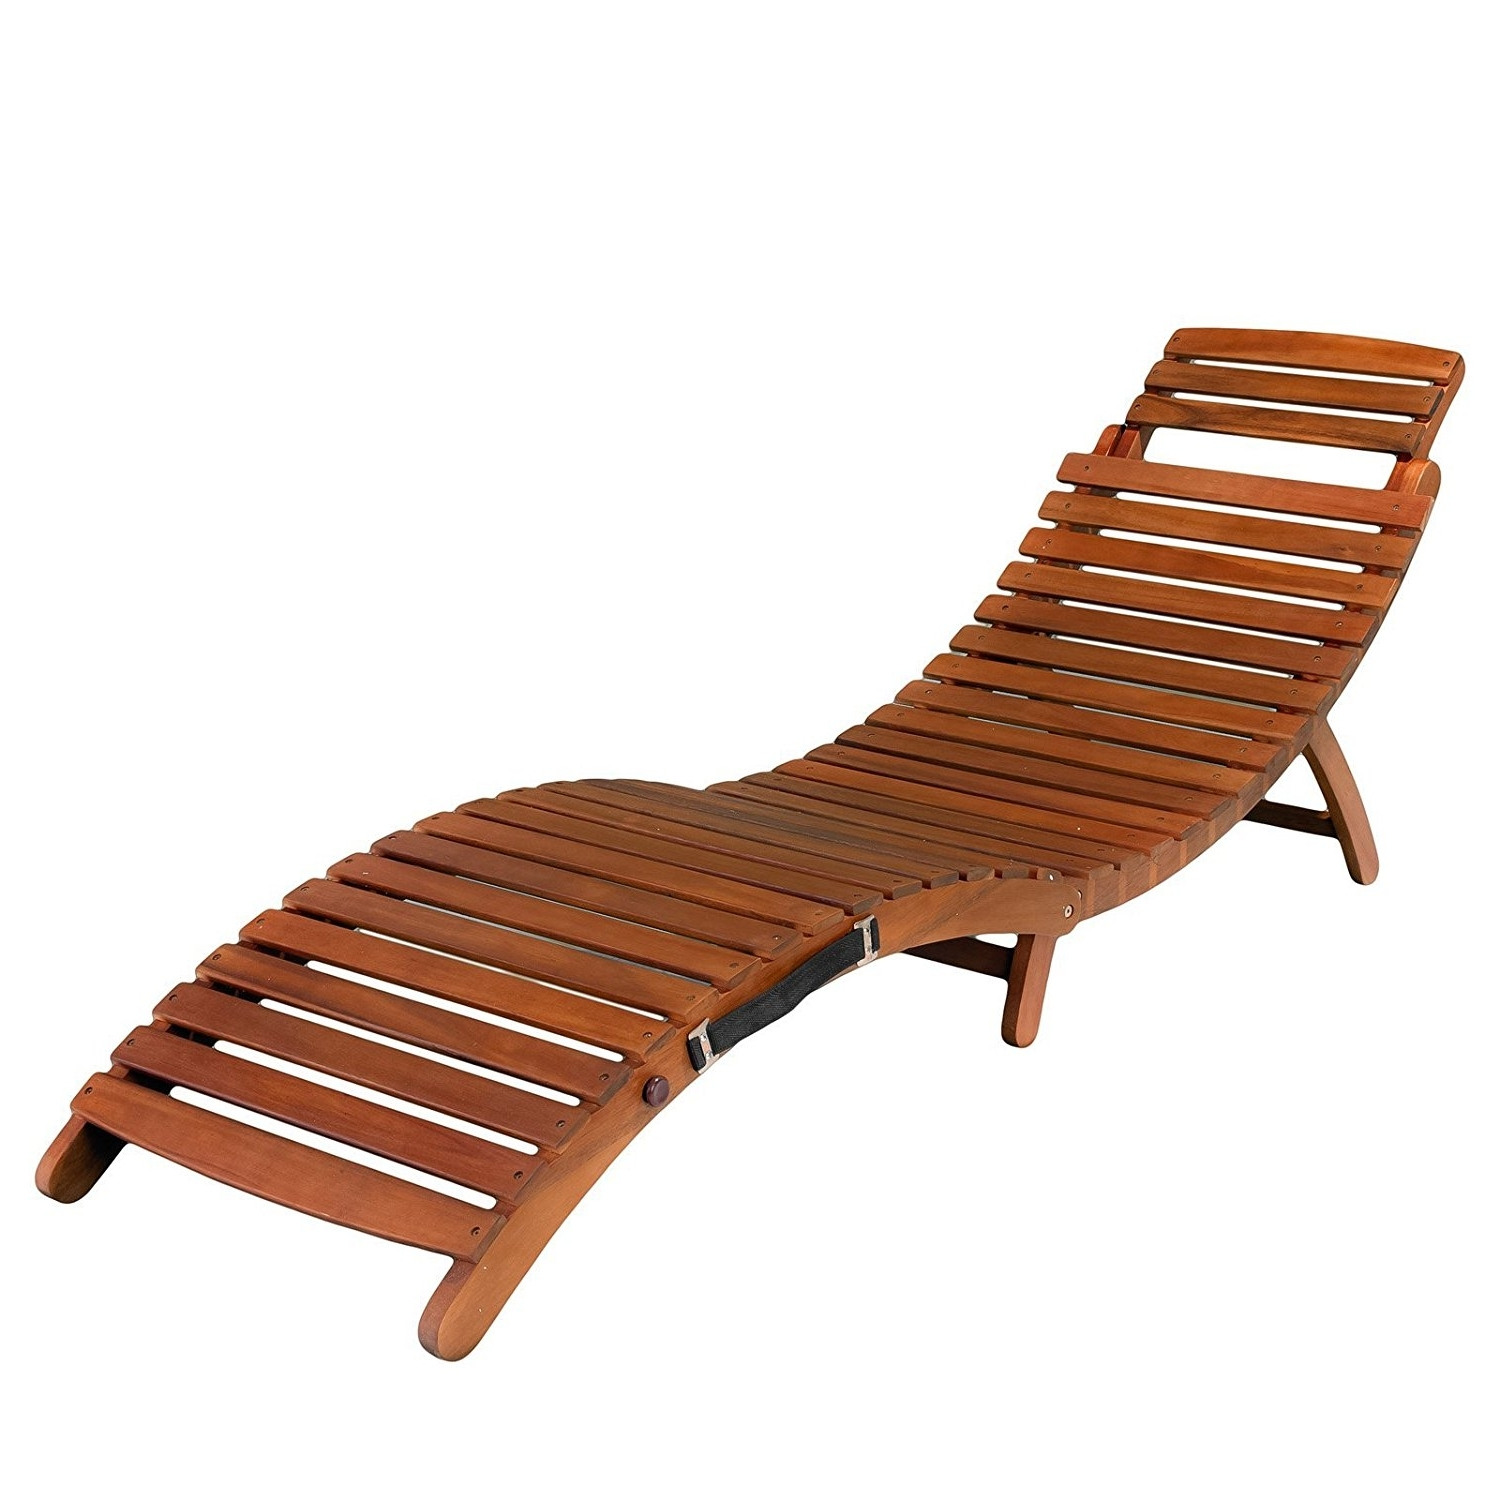 Amazon: Lahaina Outdoor Chaise Lounge: Garden & Outdoor With Regard To Well Known Chaise Lounge Chairs For Outdoors (View 3 of 15)